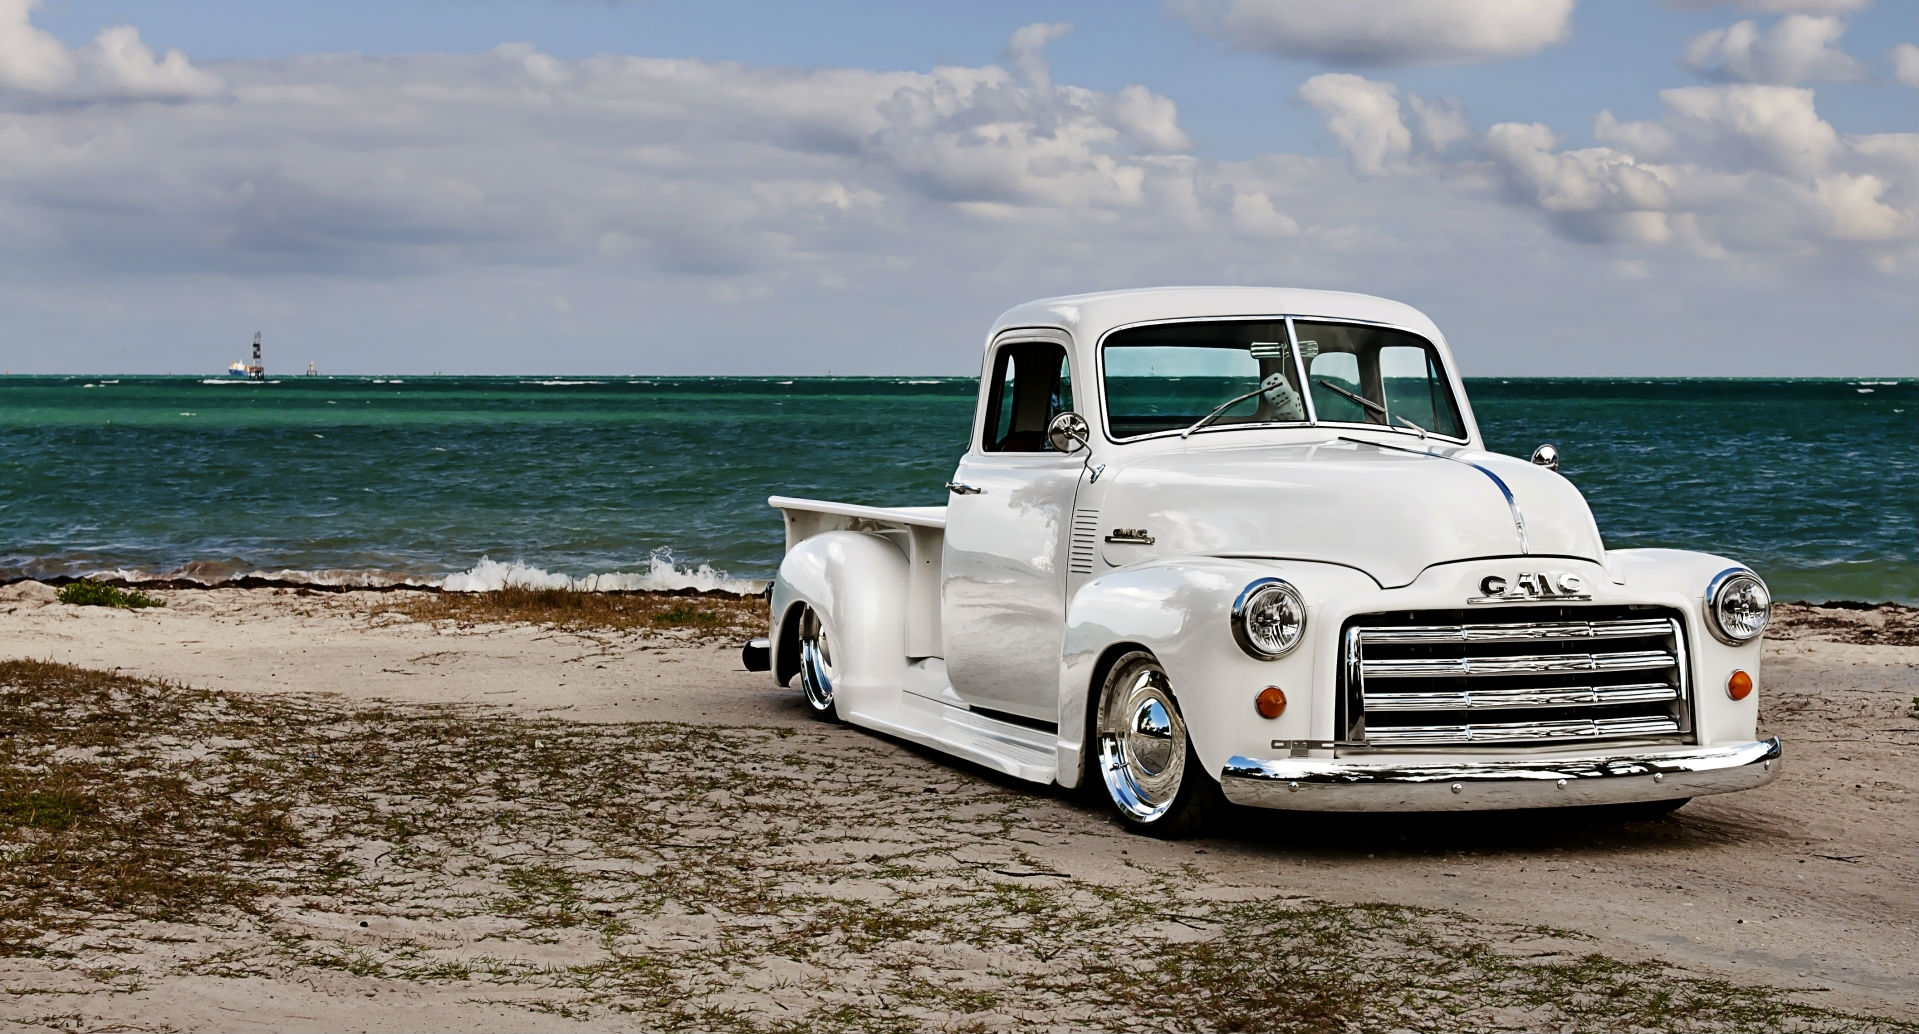 Vehicles lowrider wallpaper download next wallpaper prev wallpaper 1949 5 window gmc pick up